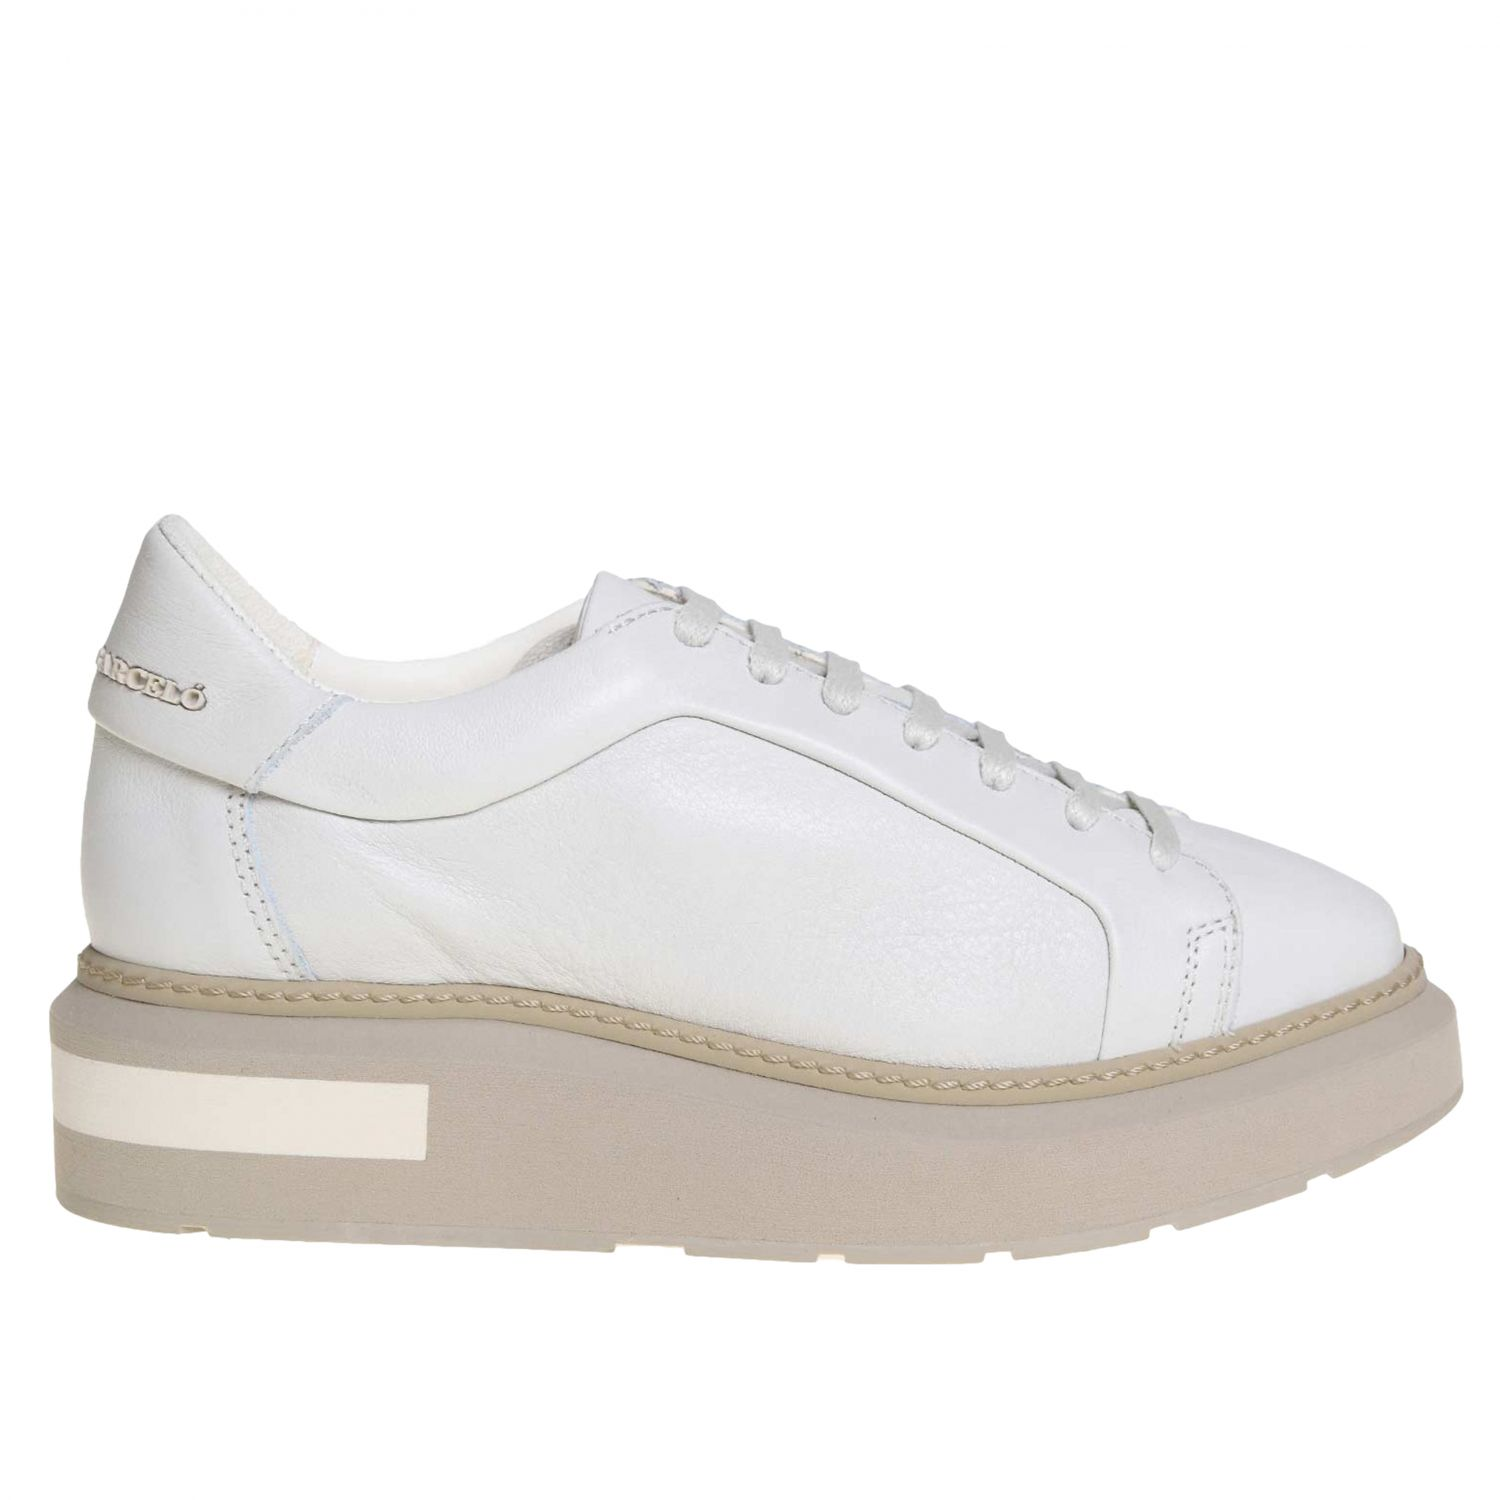 Sneakers Manuel Barcelò: Sneakers women Manuel BarcelÒ white 1